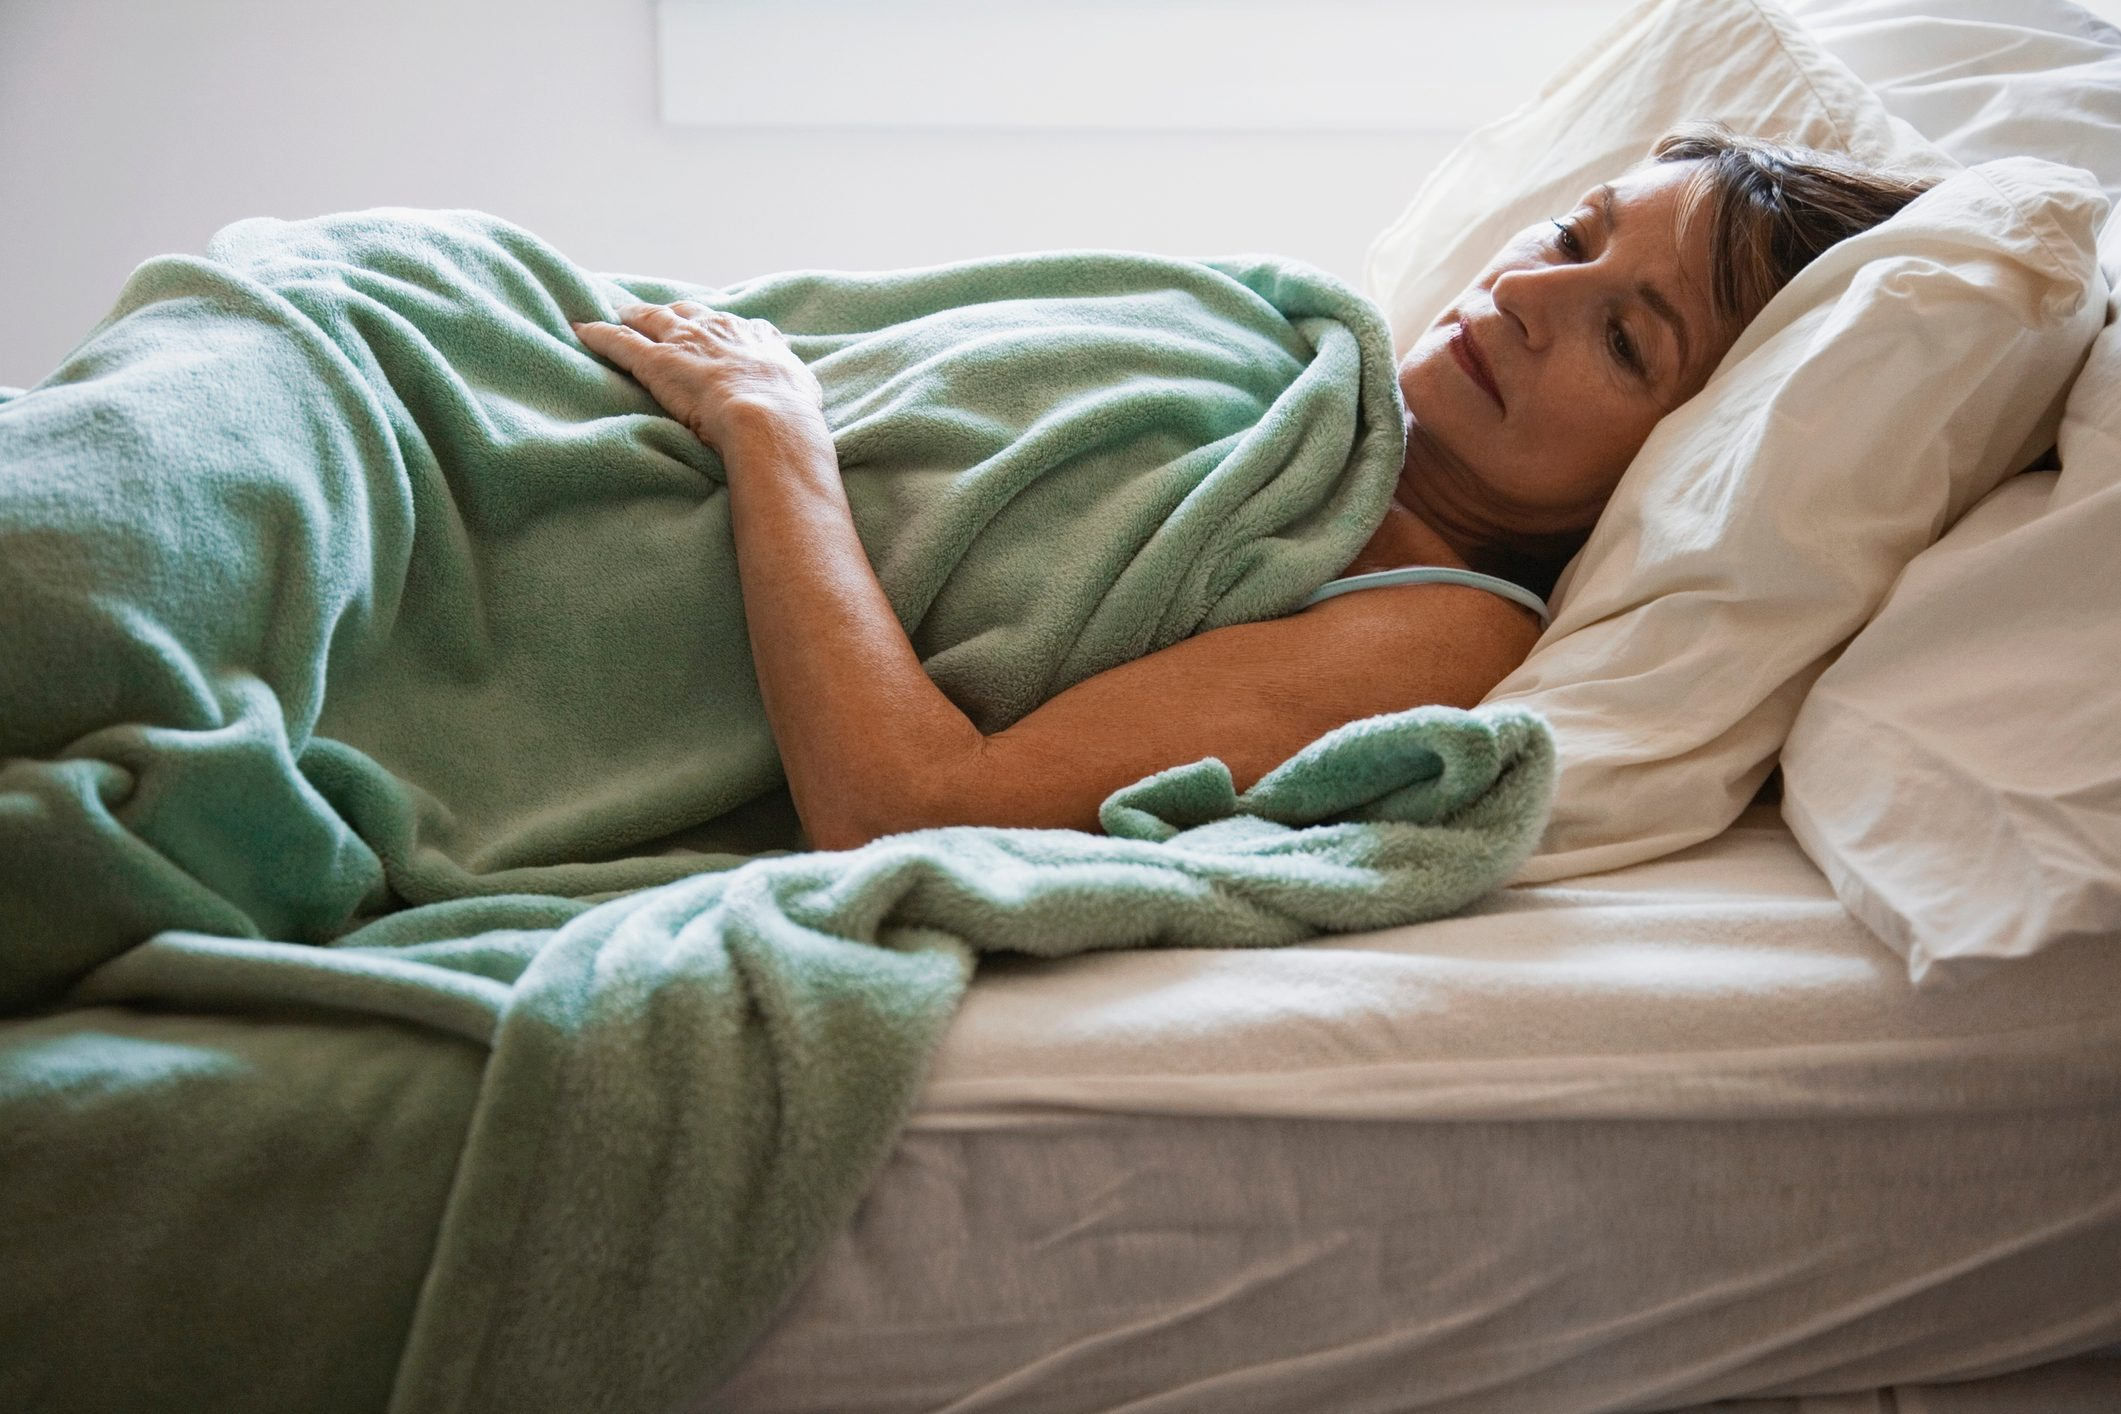 woman lying in bed awake